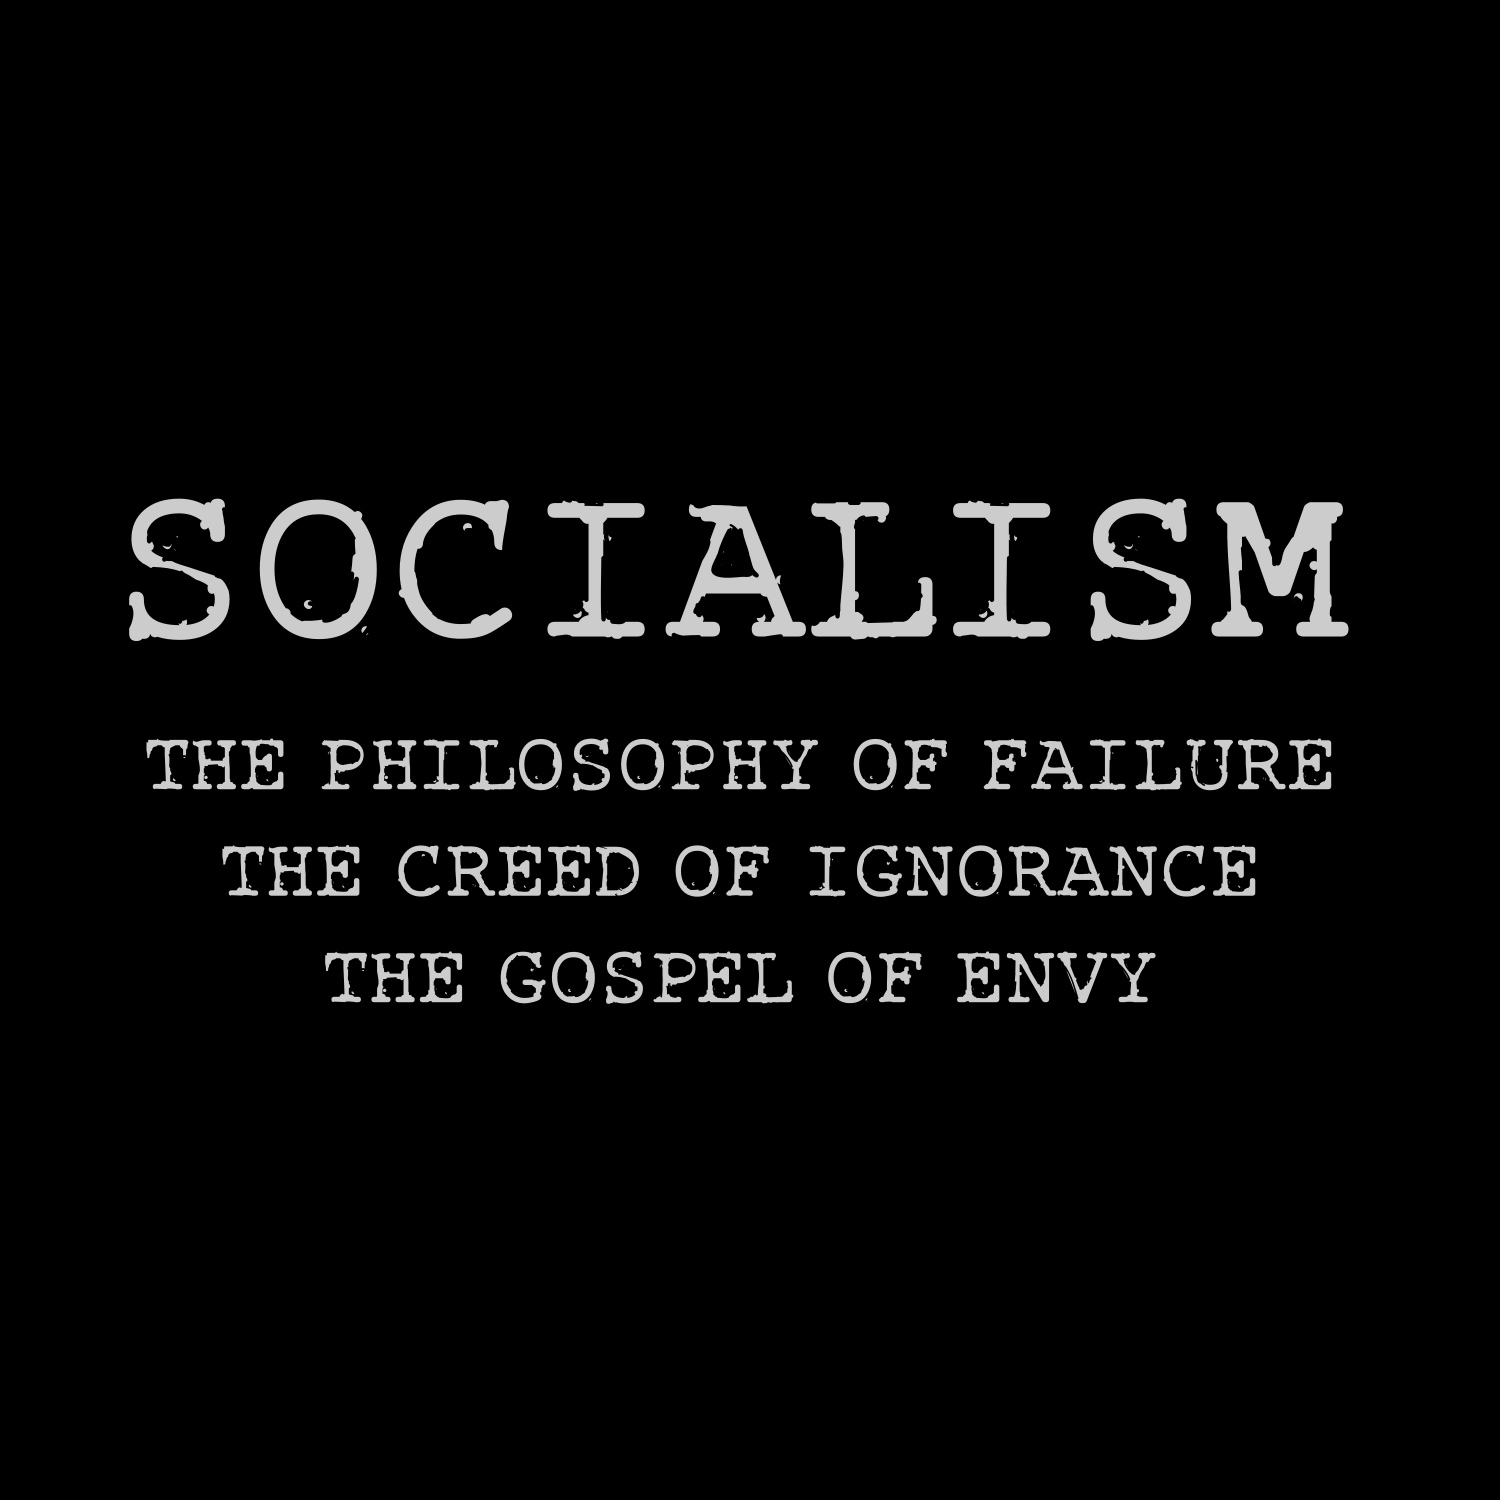 Socialism - T-shirts & more...